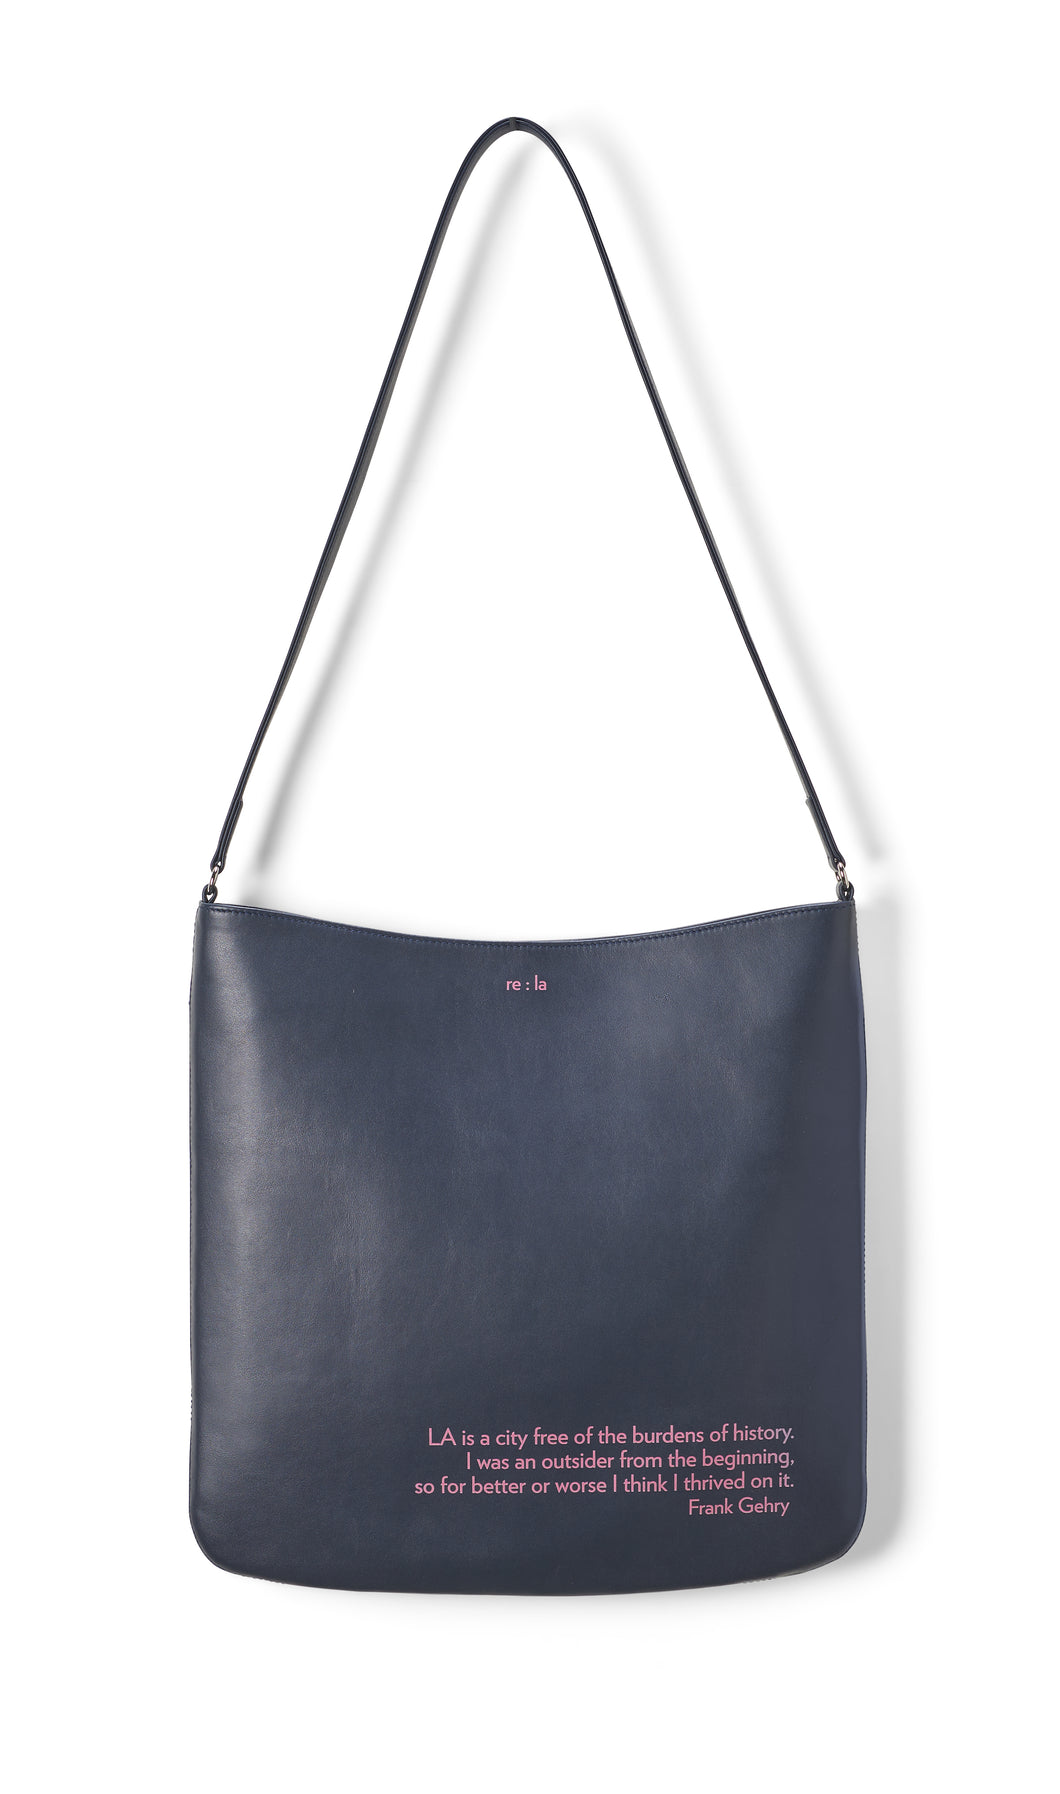 Frank Gehry Navy Crossbody Bag